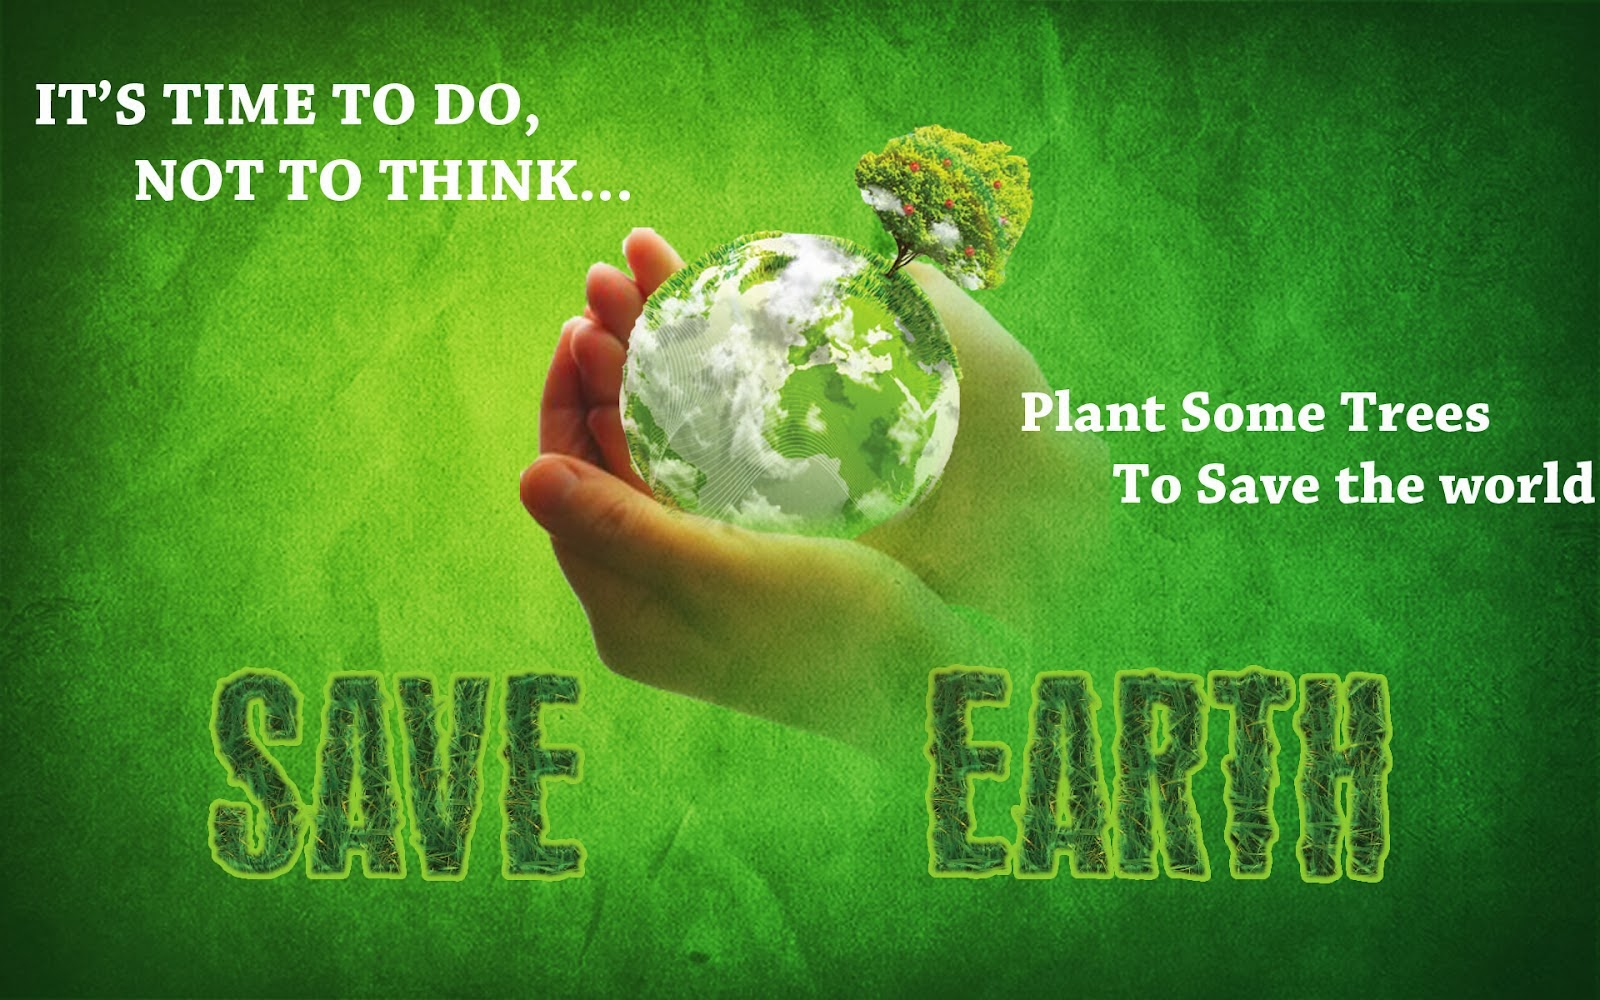 essay on our environment and our lives We only have one earth, i believe that we should try to cherish every minute of our environment day by day our lives are growing right between our fingers.